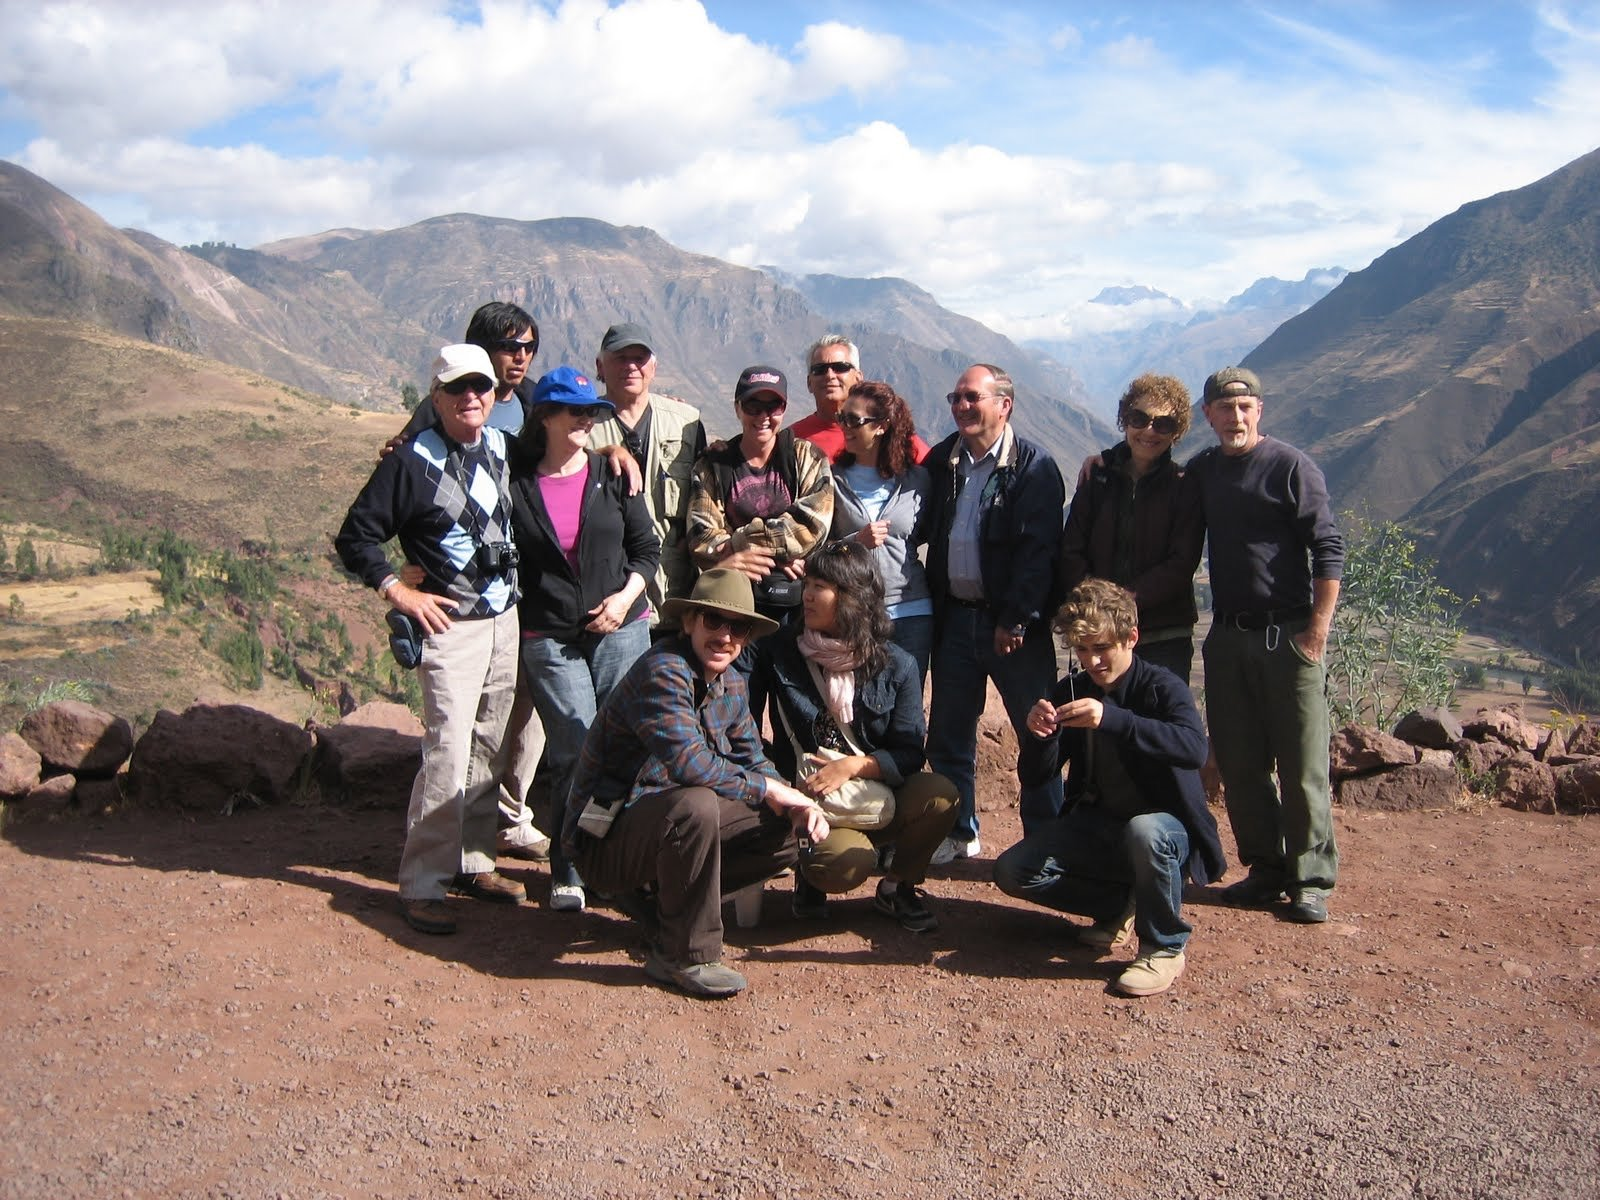 Tour group in the Sacred Valley, Cusco, Peru